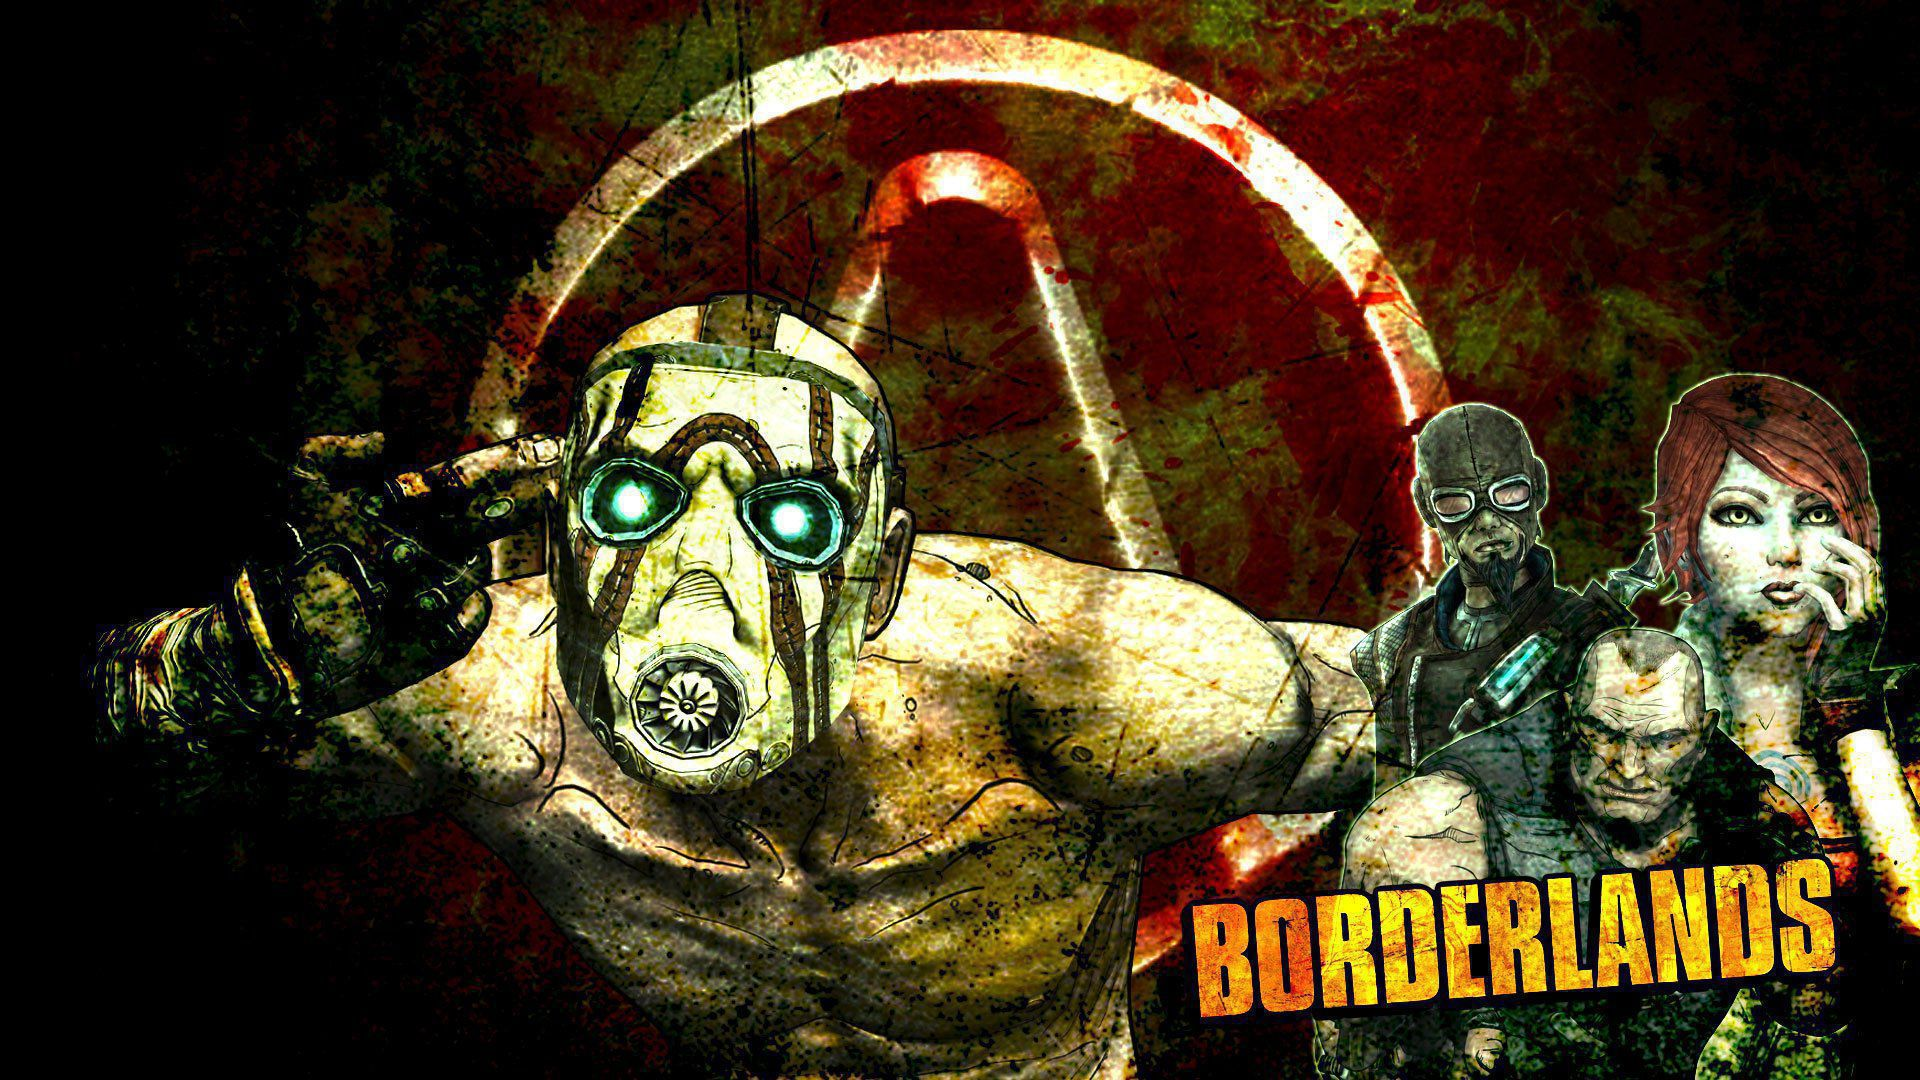 Borderlands Background